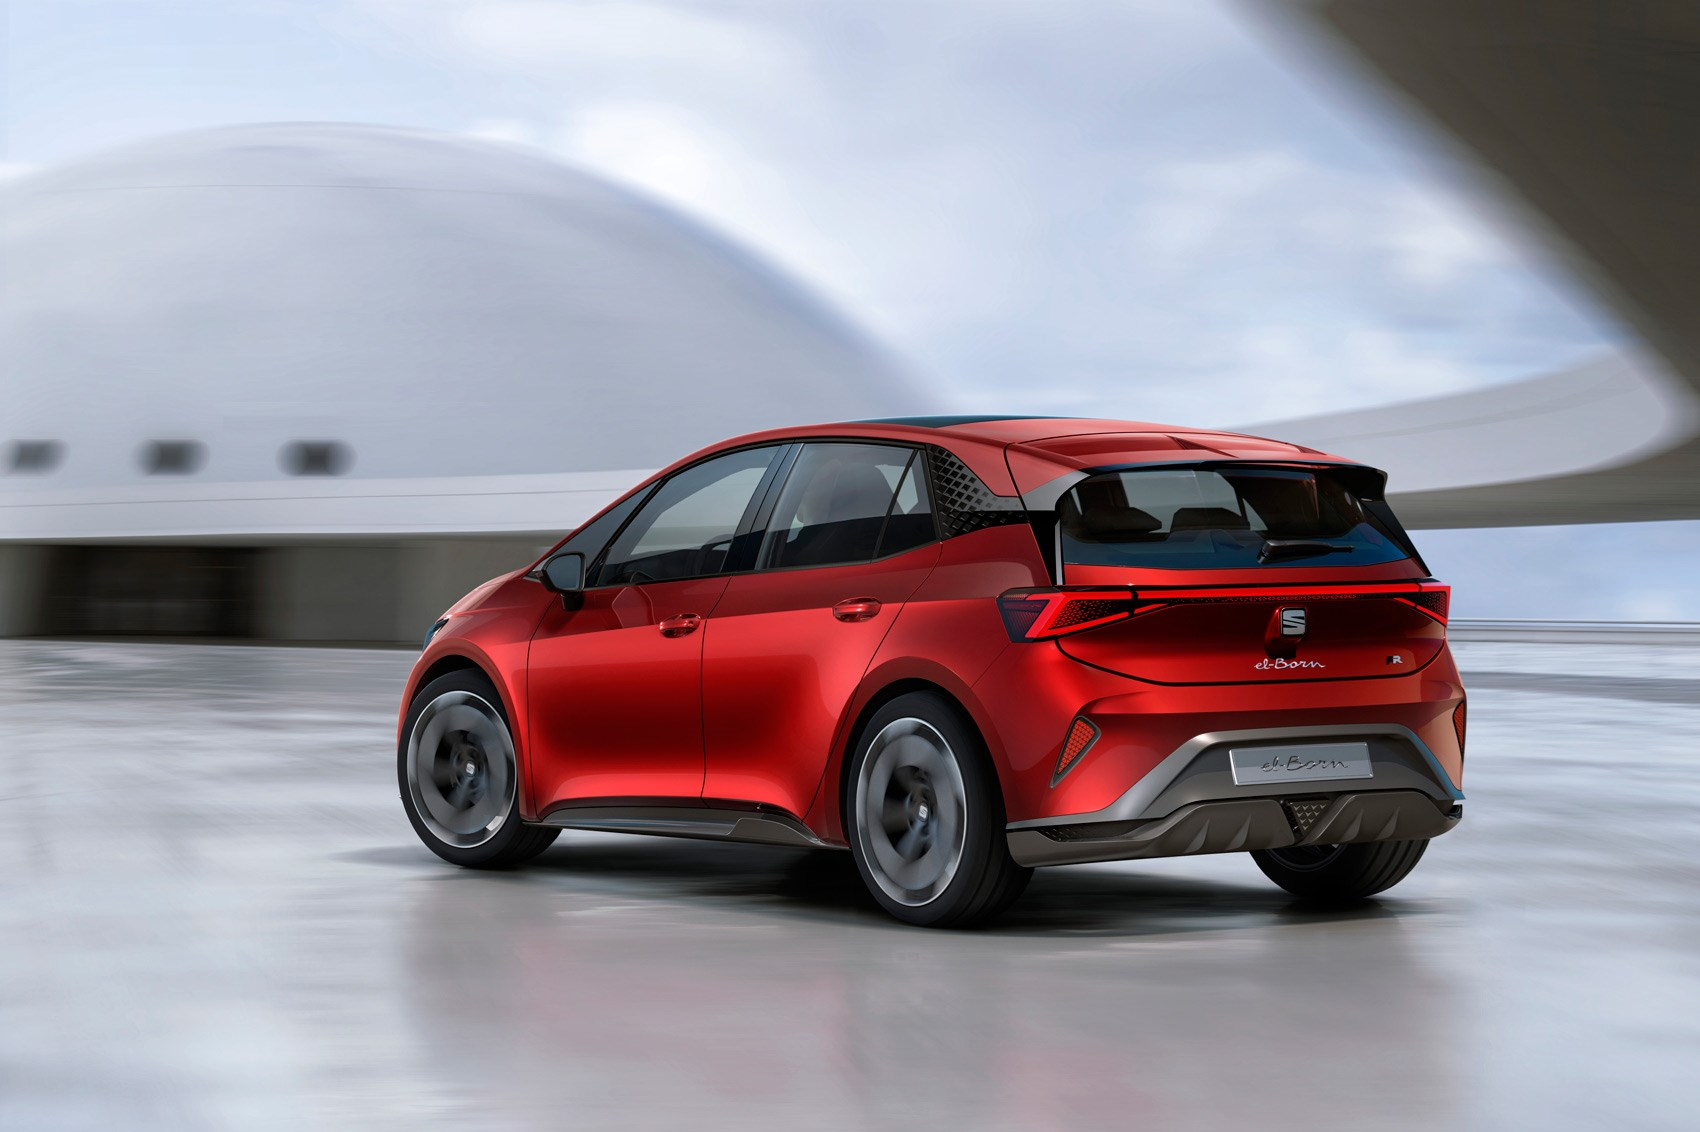 Seat showcases electric plans through El-Born concept